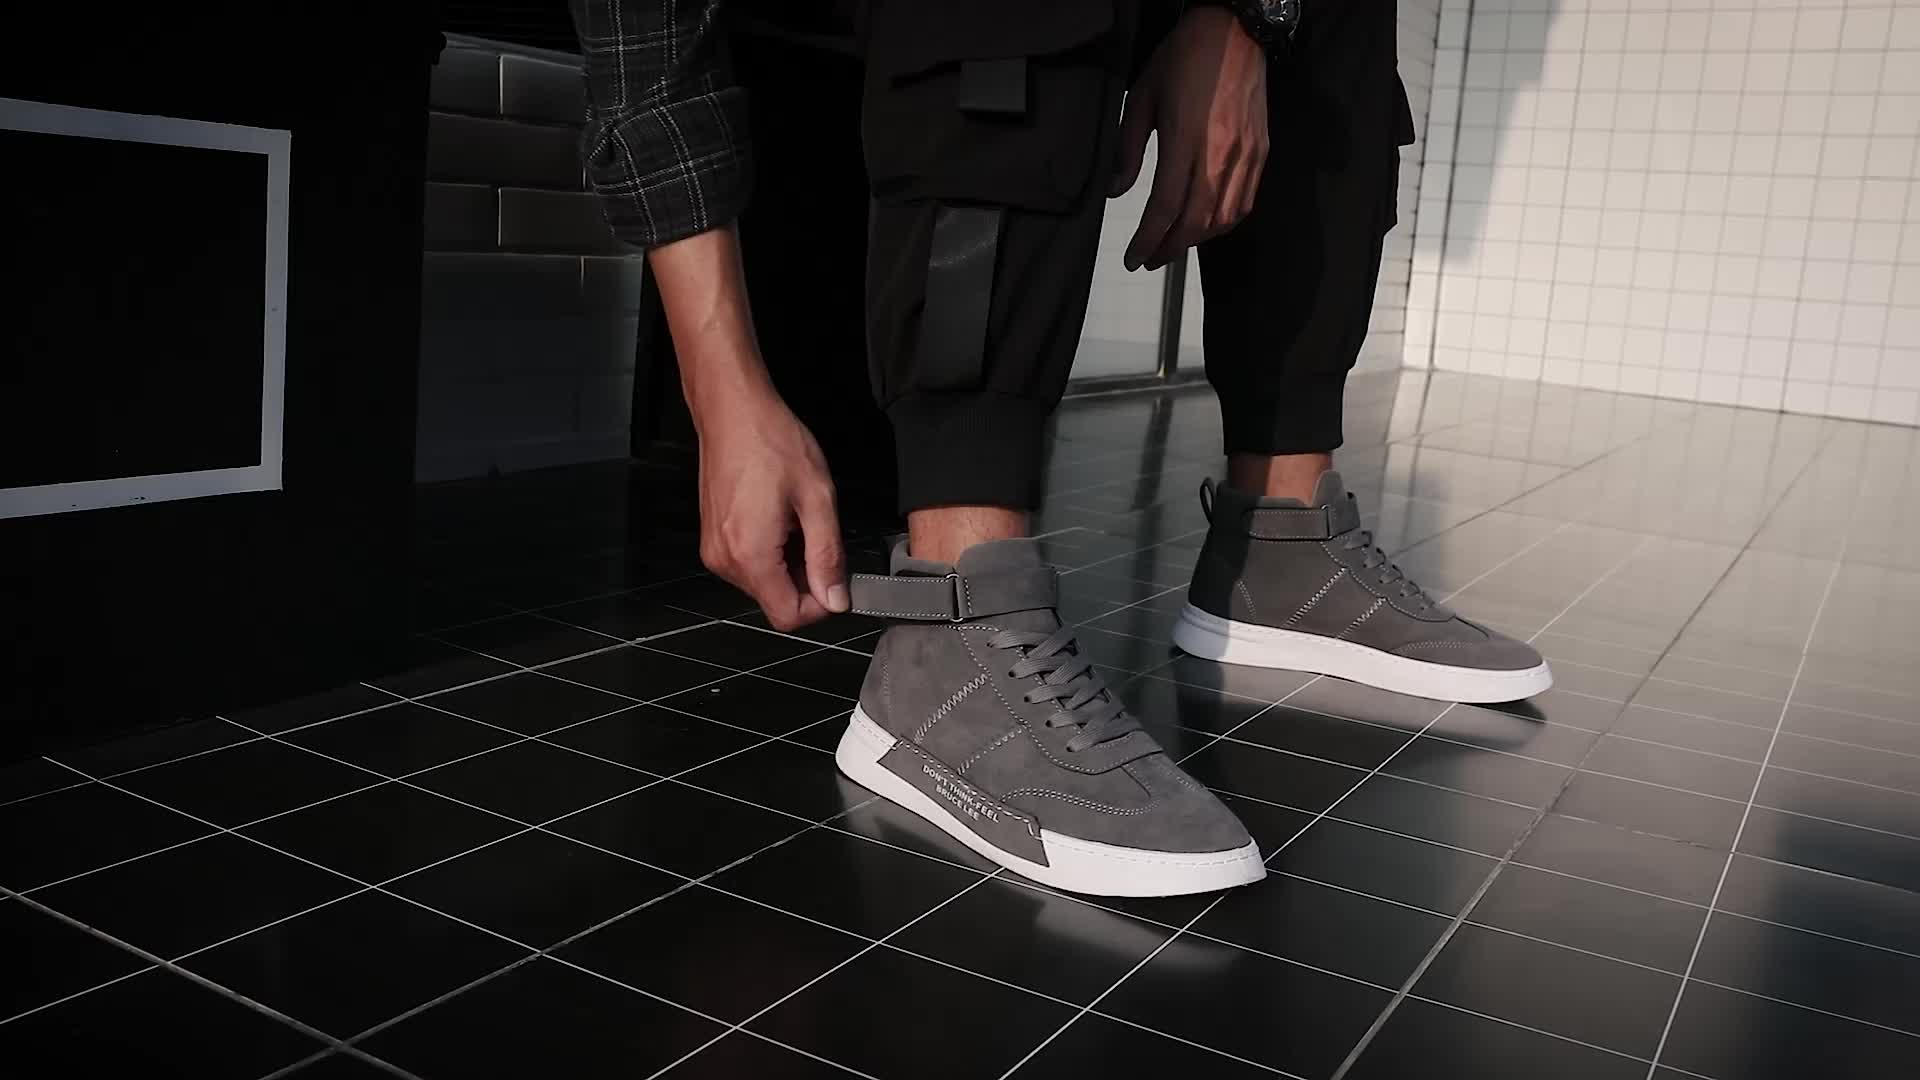 Custom Brand 2019 High Top Canvas Skate Shoe For Men Fashion Sneakers  Running Shoes Casual Shoe L-A022